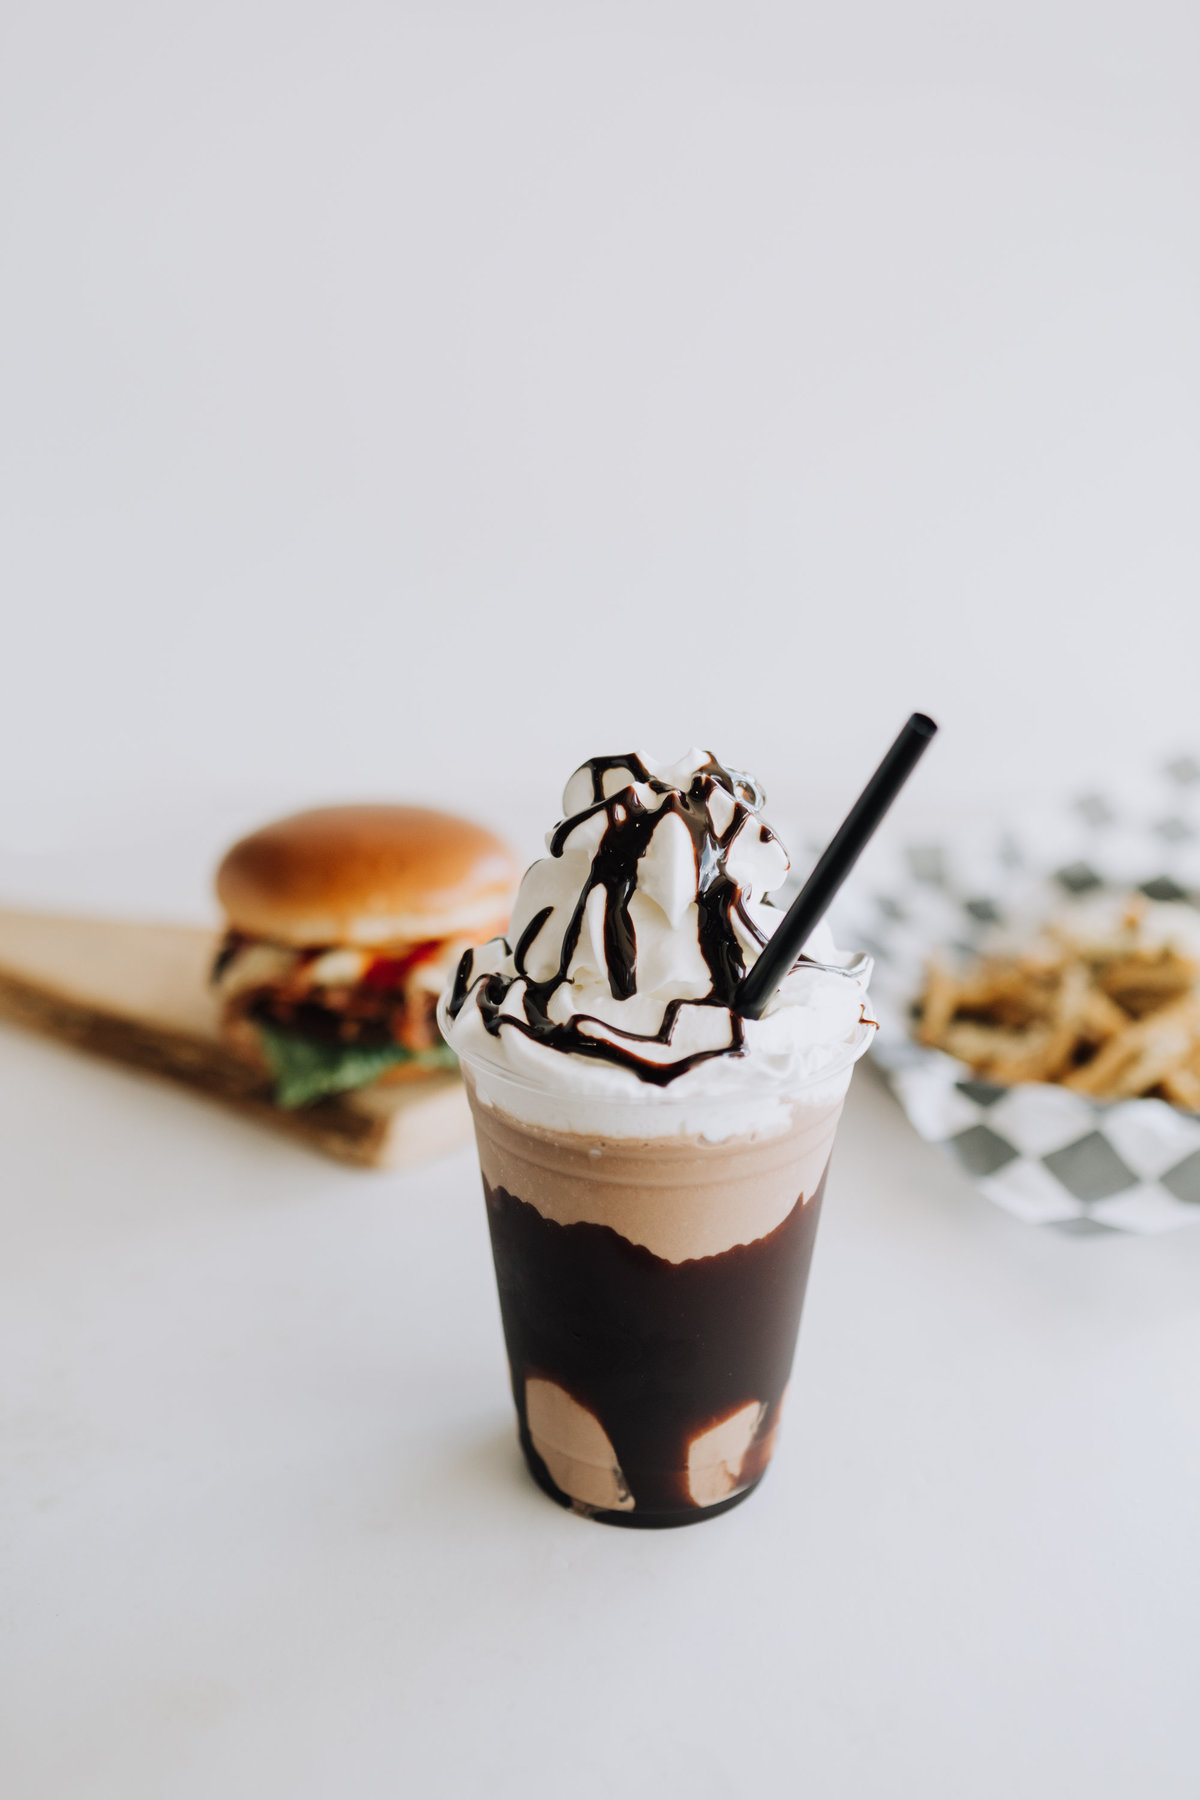 honest abes burgers hamburgers french fries  milkshake chocolate shake